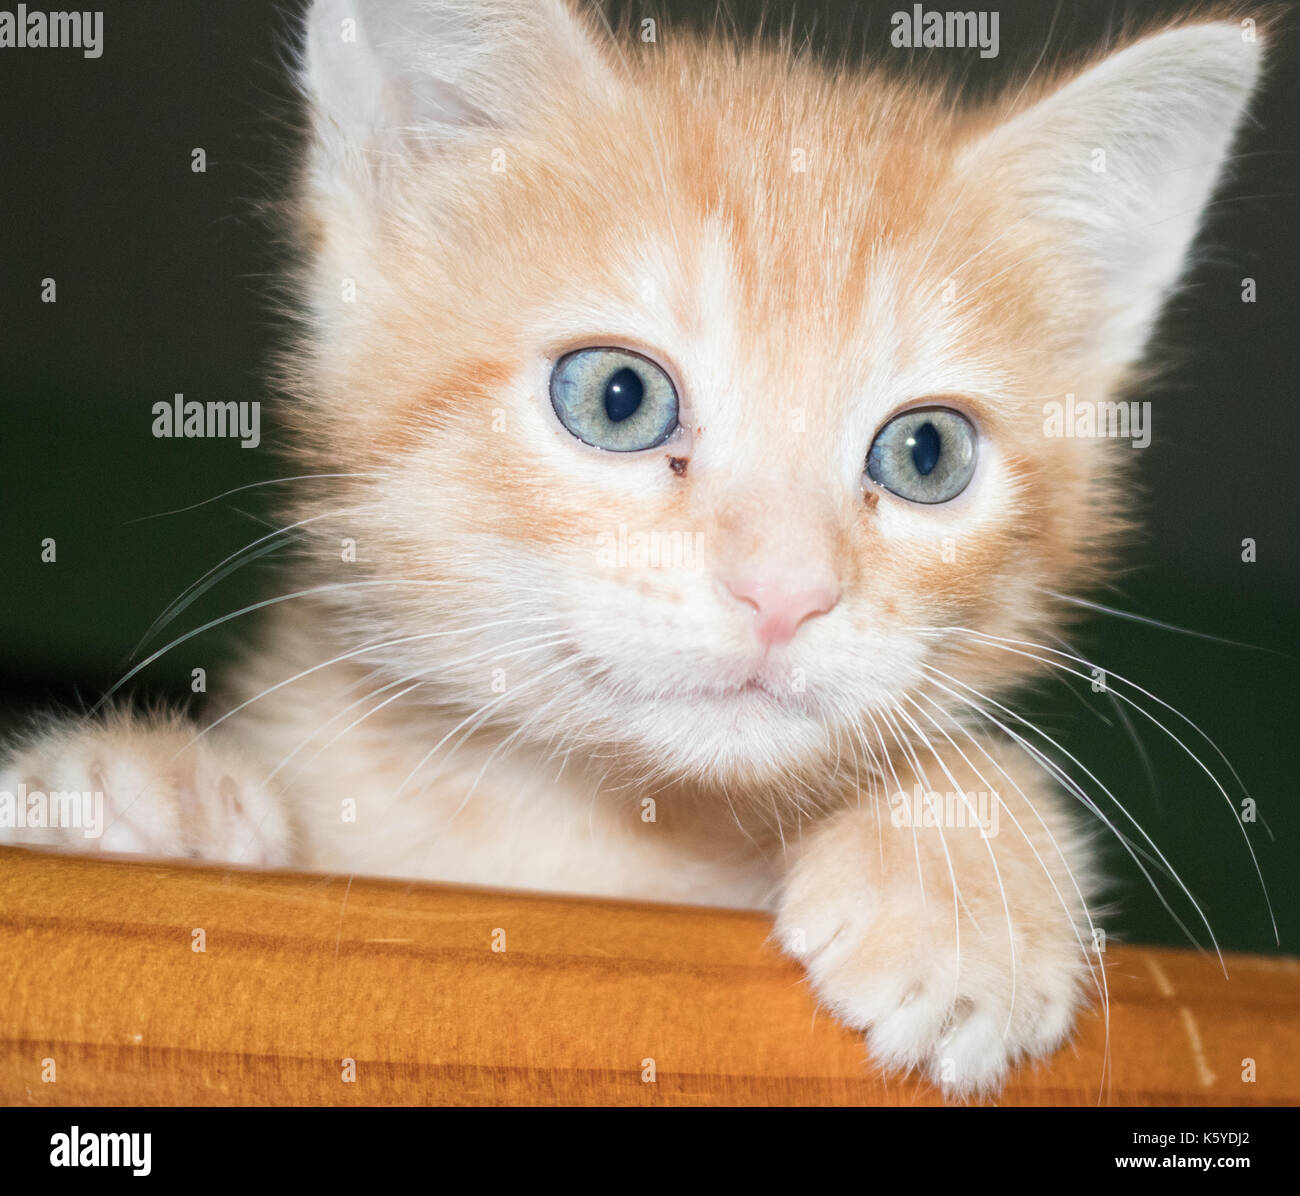 Orange Kitten With Stripes And Blue Eyes